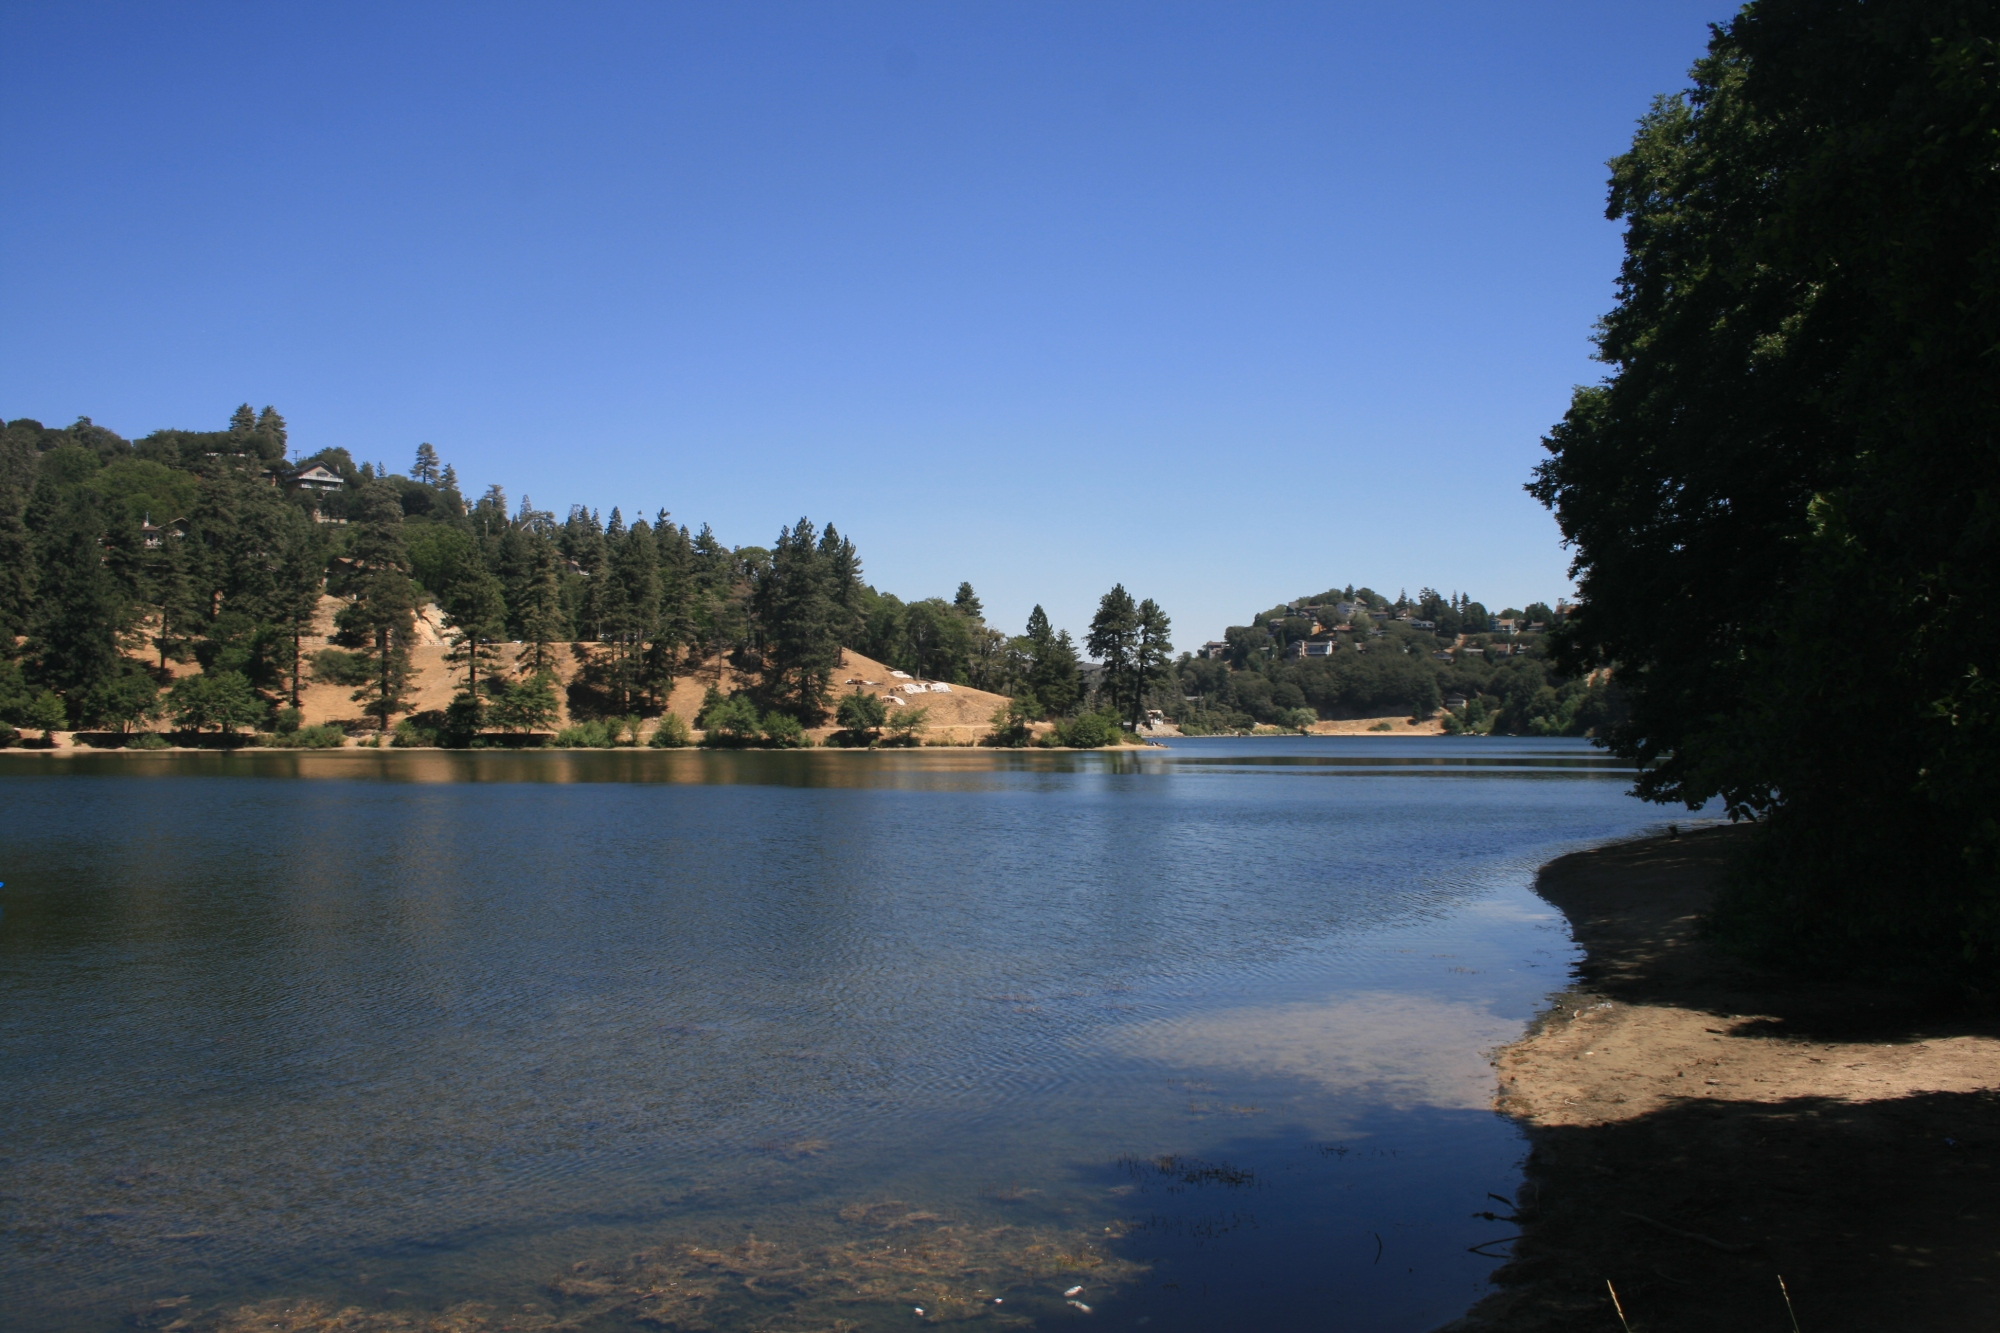 Lake Gregory, Crestline, CA